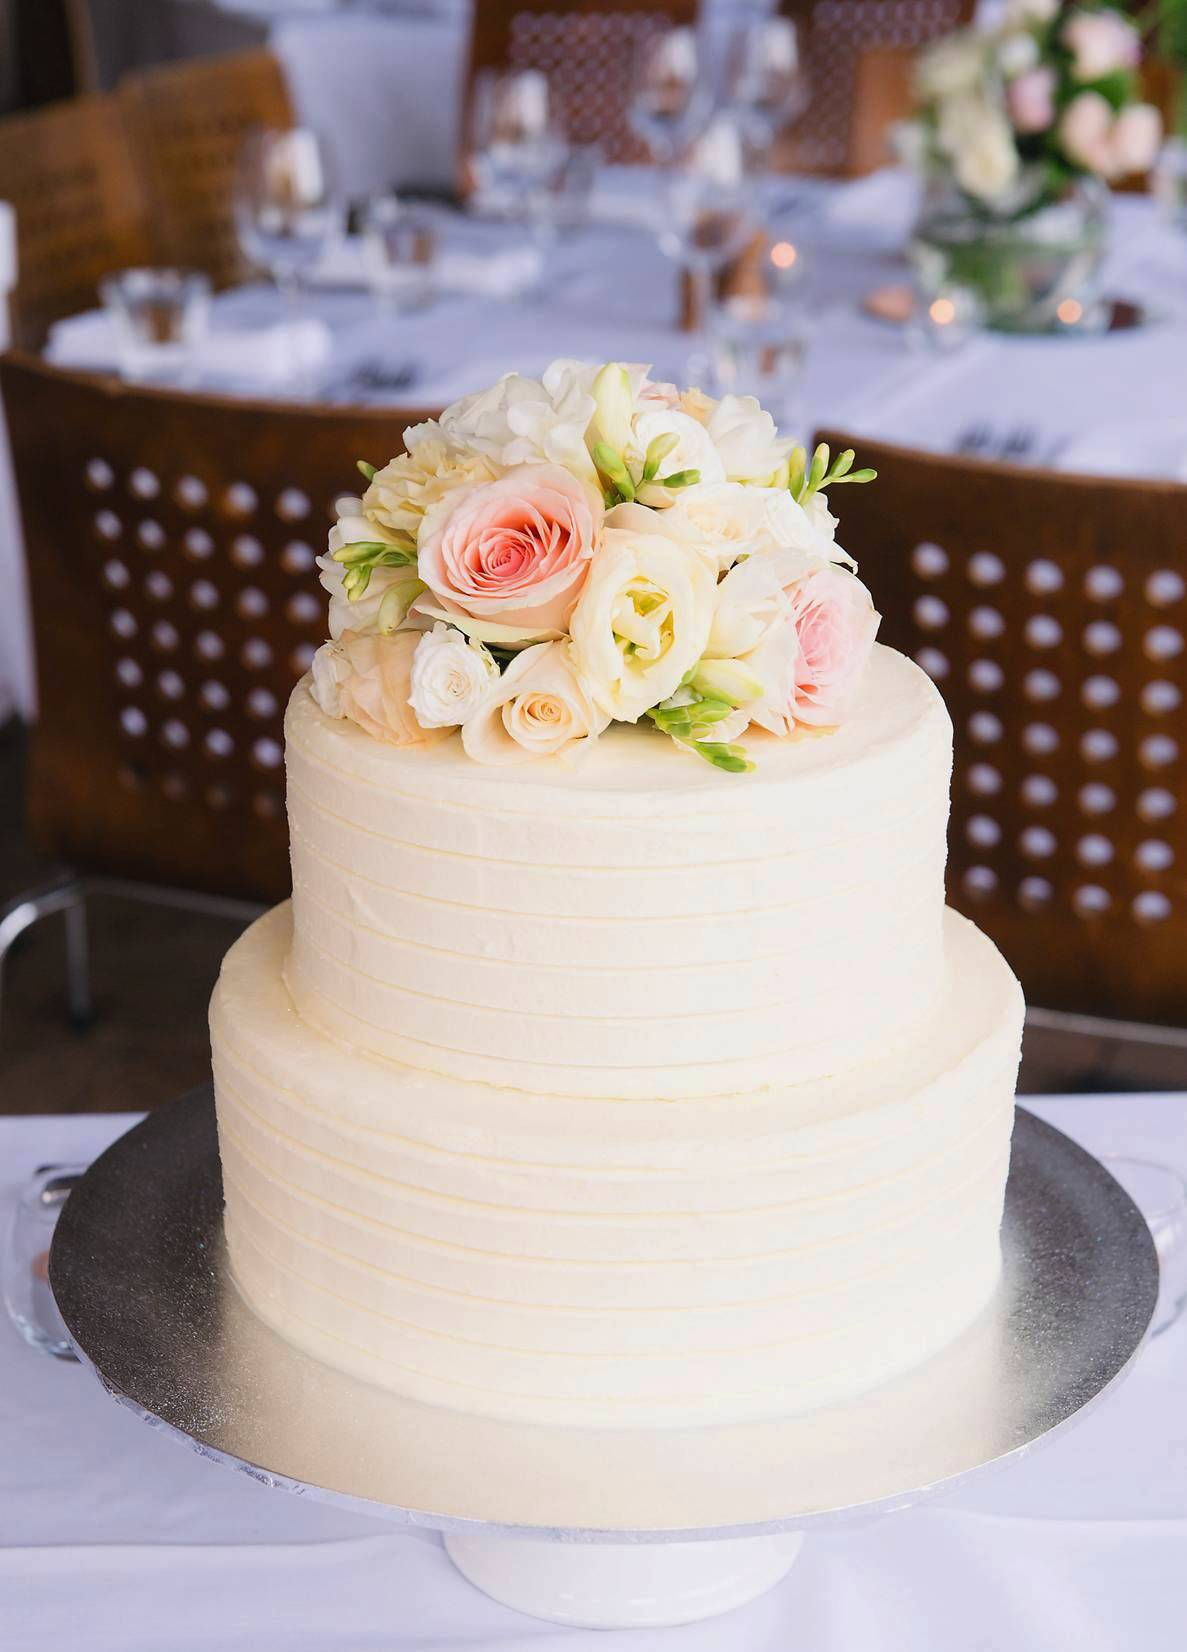 Vanilla Pod frosted Wedding Cake with fresh flowers.jpg